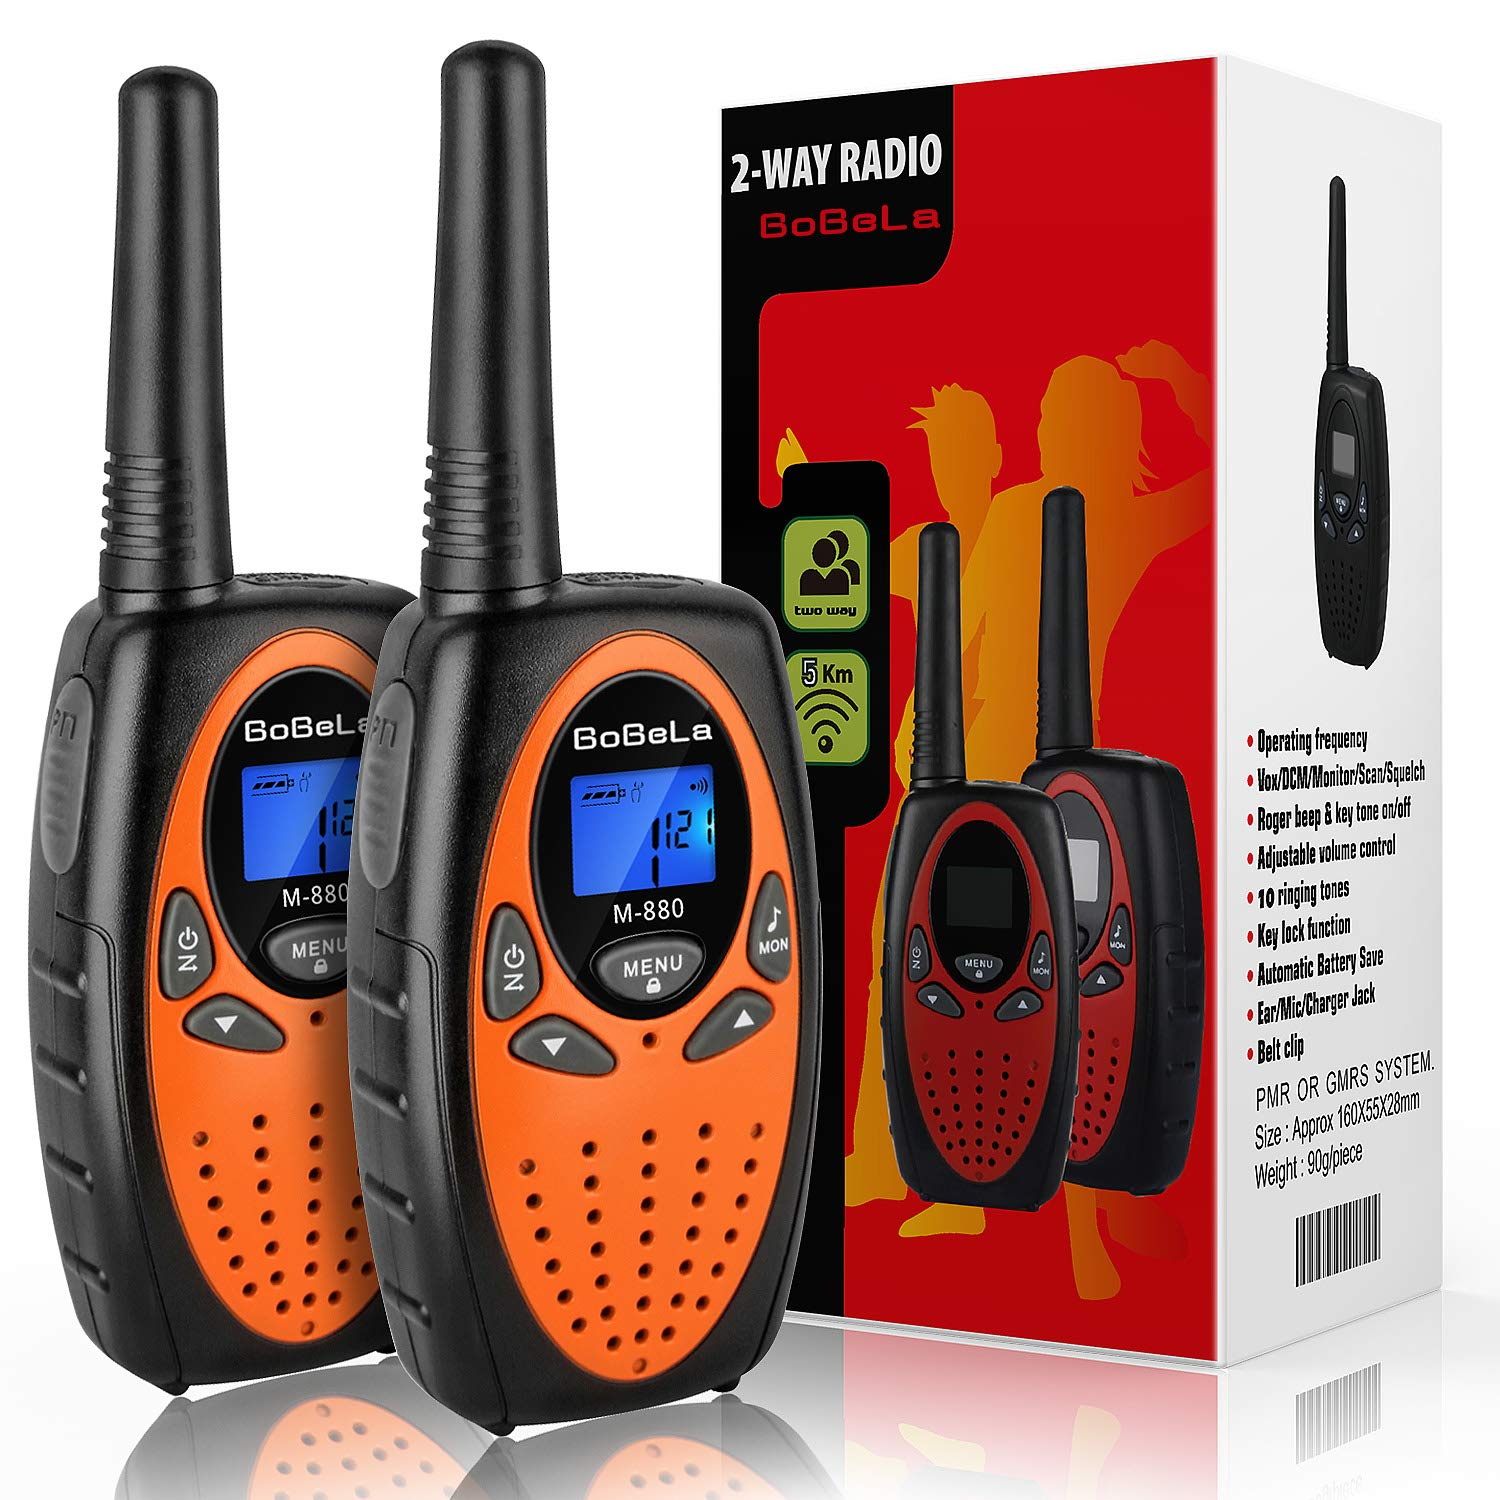 Bobela Camping and Cruise Ship Accessories, Handheld Walky Talky with Belt Clip for Adults,Easy to Use Walkie Talkies for Family Travel Trip(M880 Orange,2 Pack) by Bobela (Image #1)